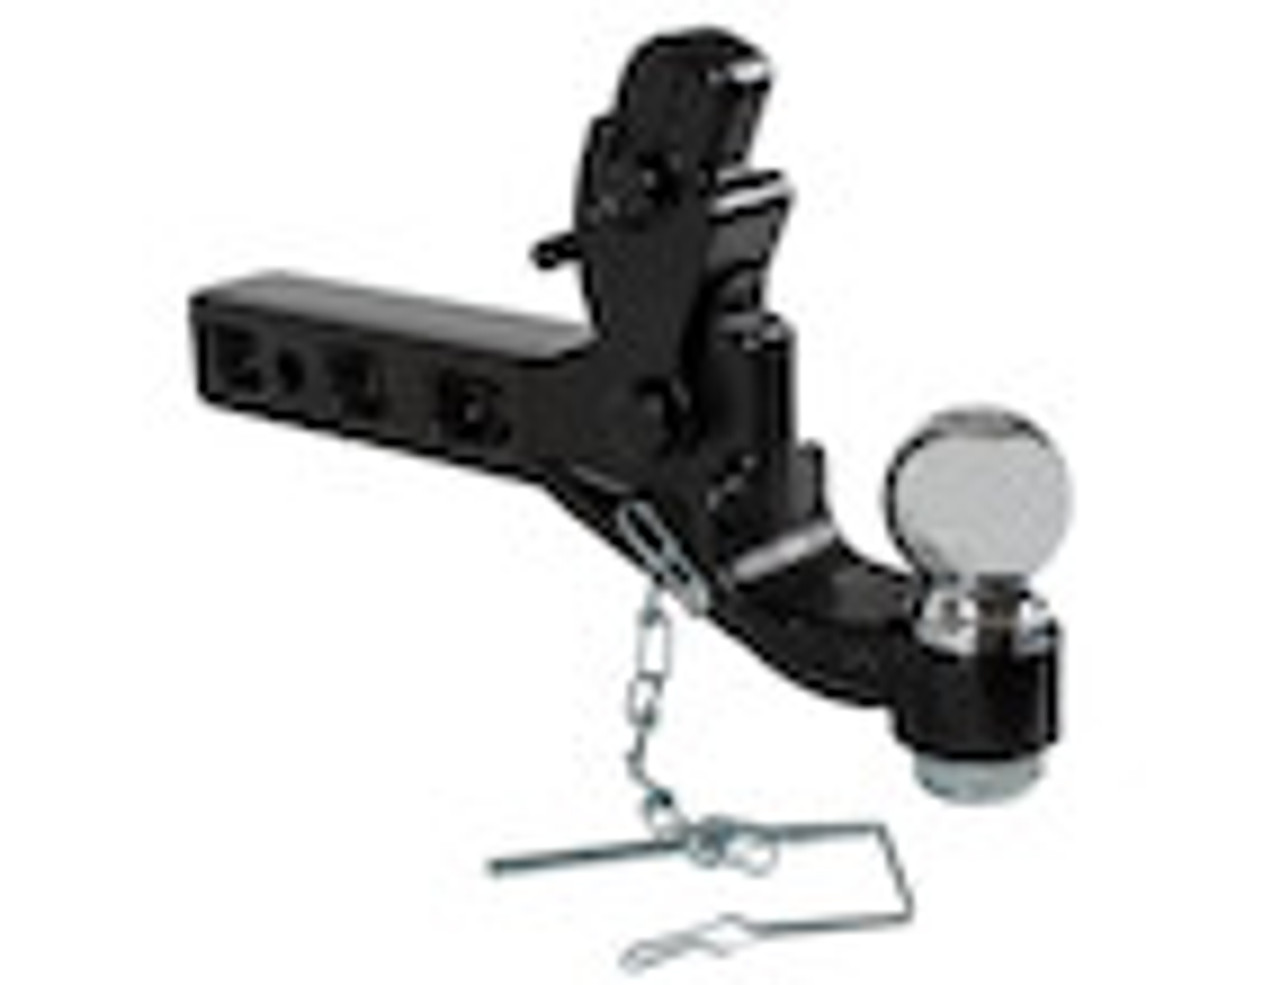 RM62000 BUYERS 6 Ton Combination Hitch - Pintle Hitch With 2 Inch Ball 4